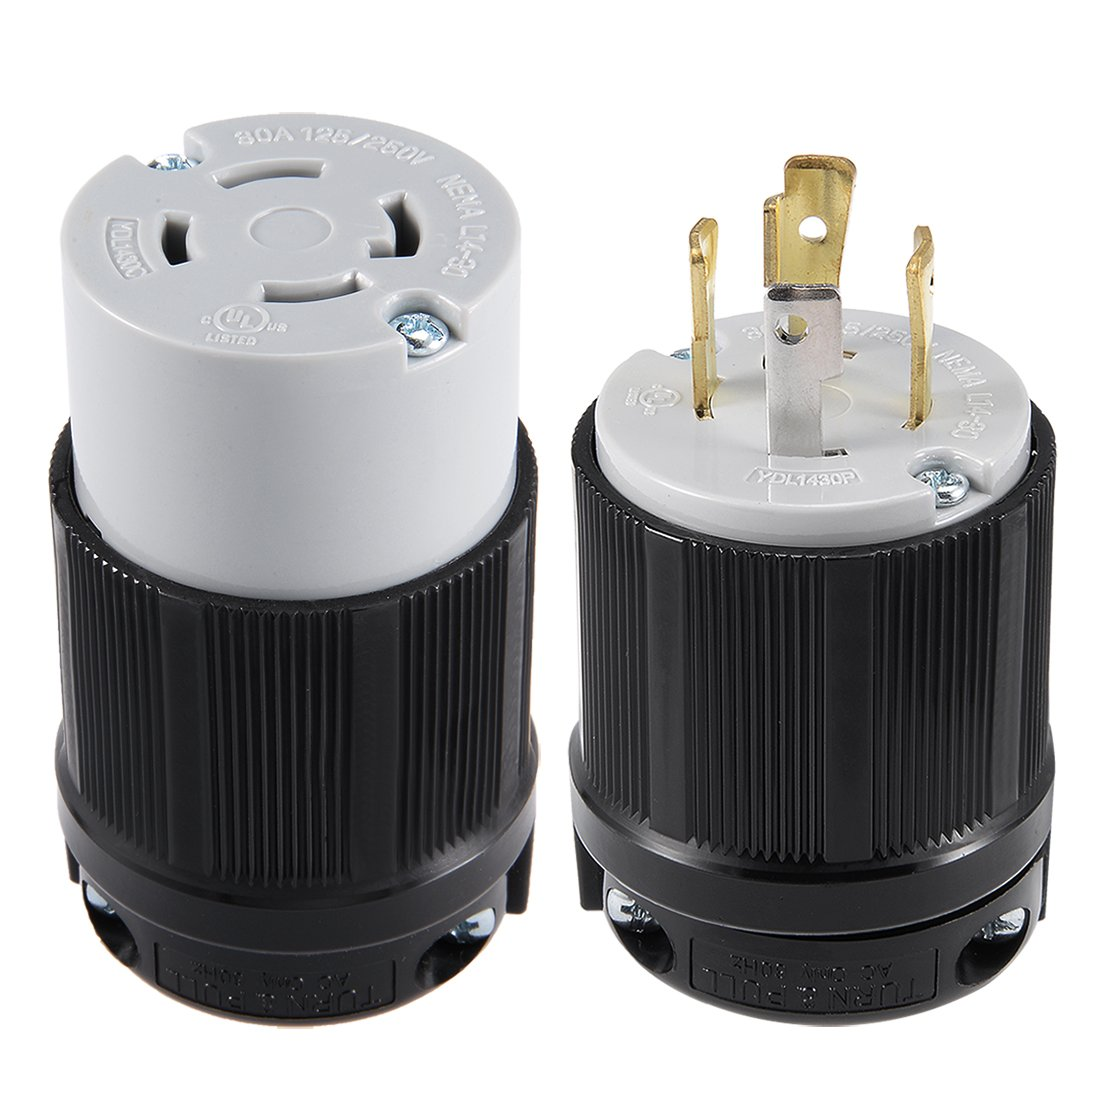 uxcell UL Listed, NEMA L14-30P/L14-30C Plug and Connector Set, 30A, AC 125V/250V, 3P 4W, Industrial Grade, Grouding, for Generator Power Cable, US Plug, YUADON Authorized